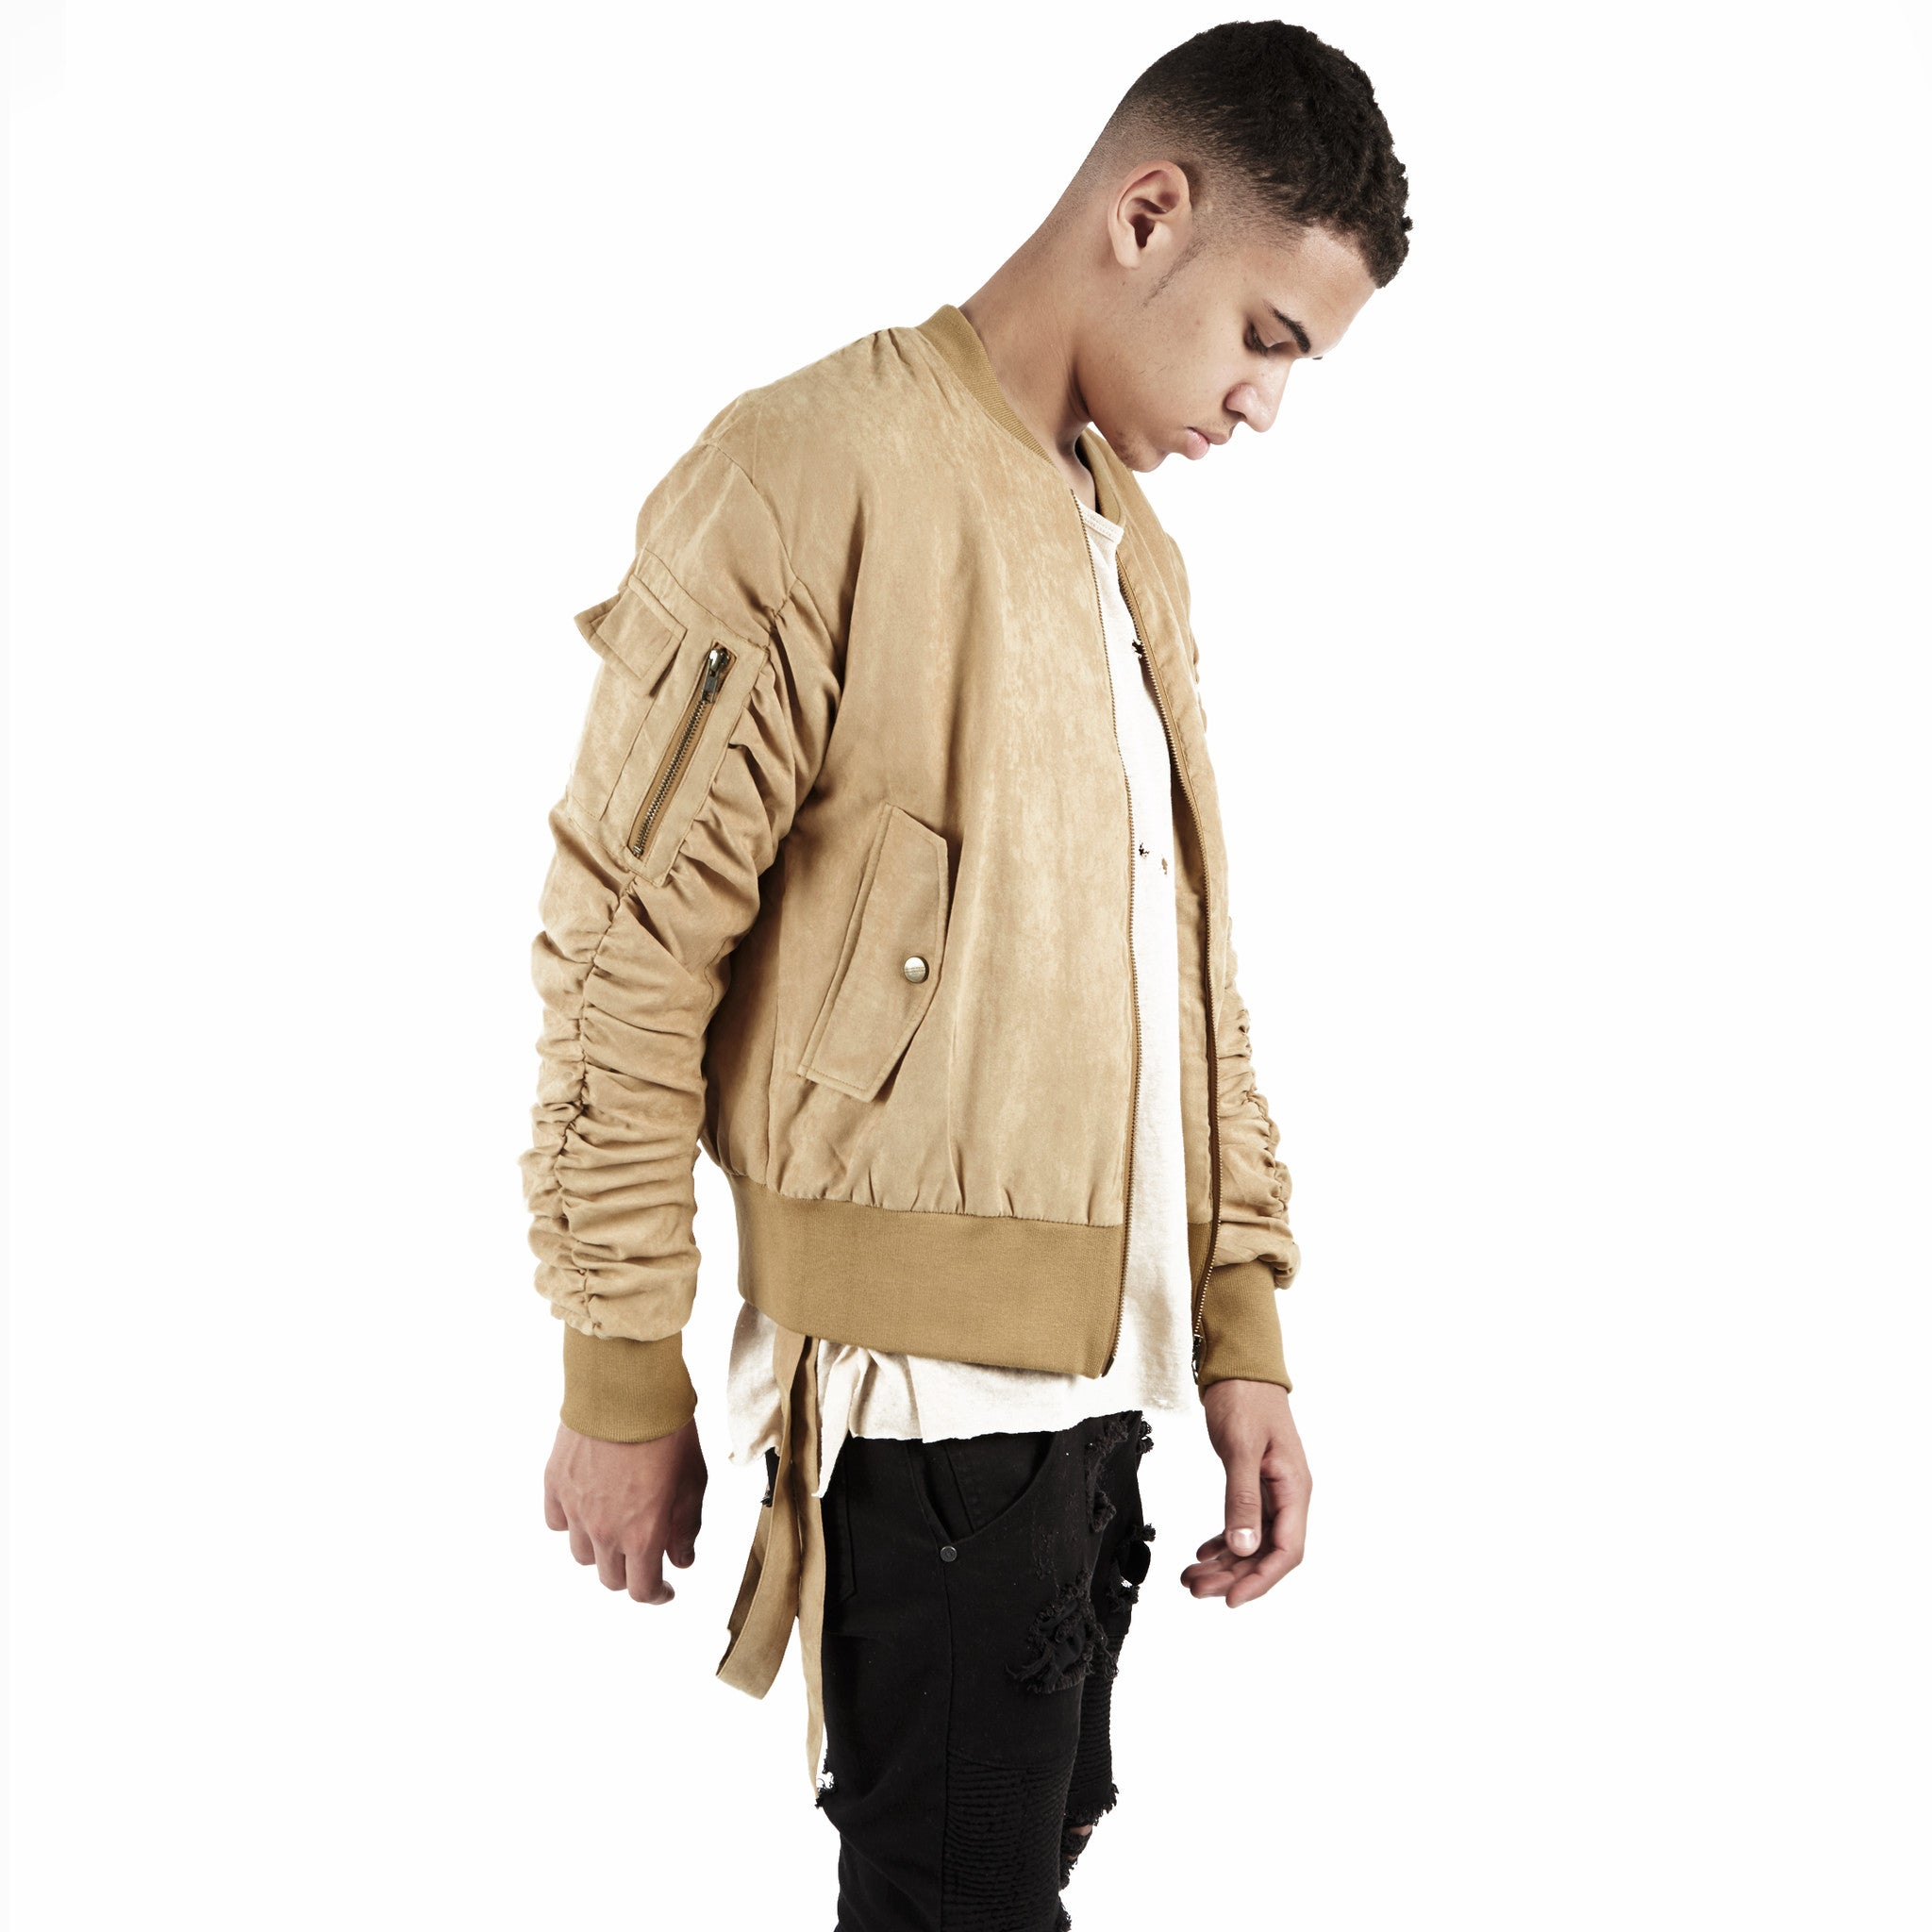 JK264 Suede Strapped Bomber Jacket - Beige - underated london - underatedco - 6